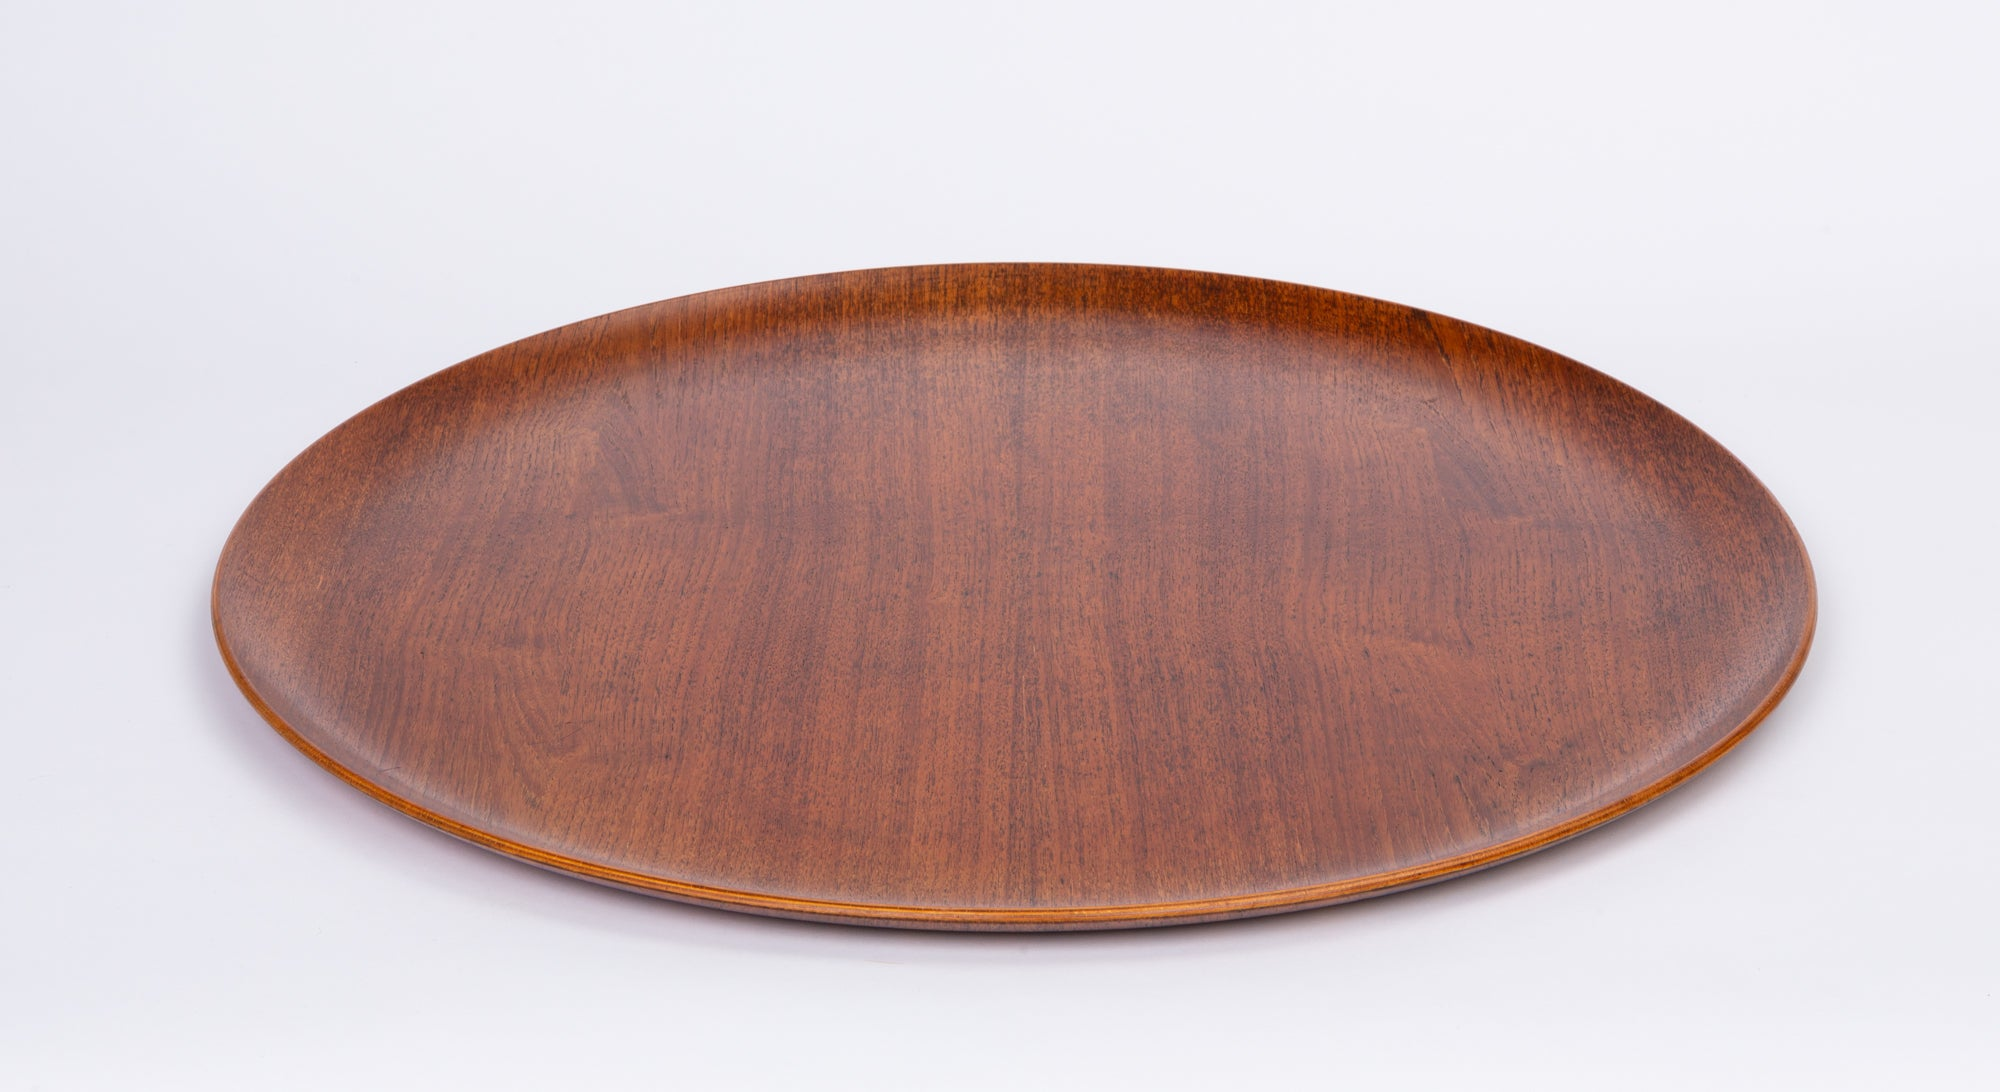 Jens Quistgaard Style Teak Tray with Curved Edge